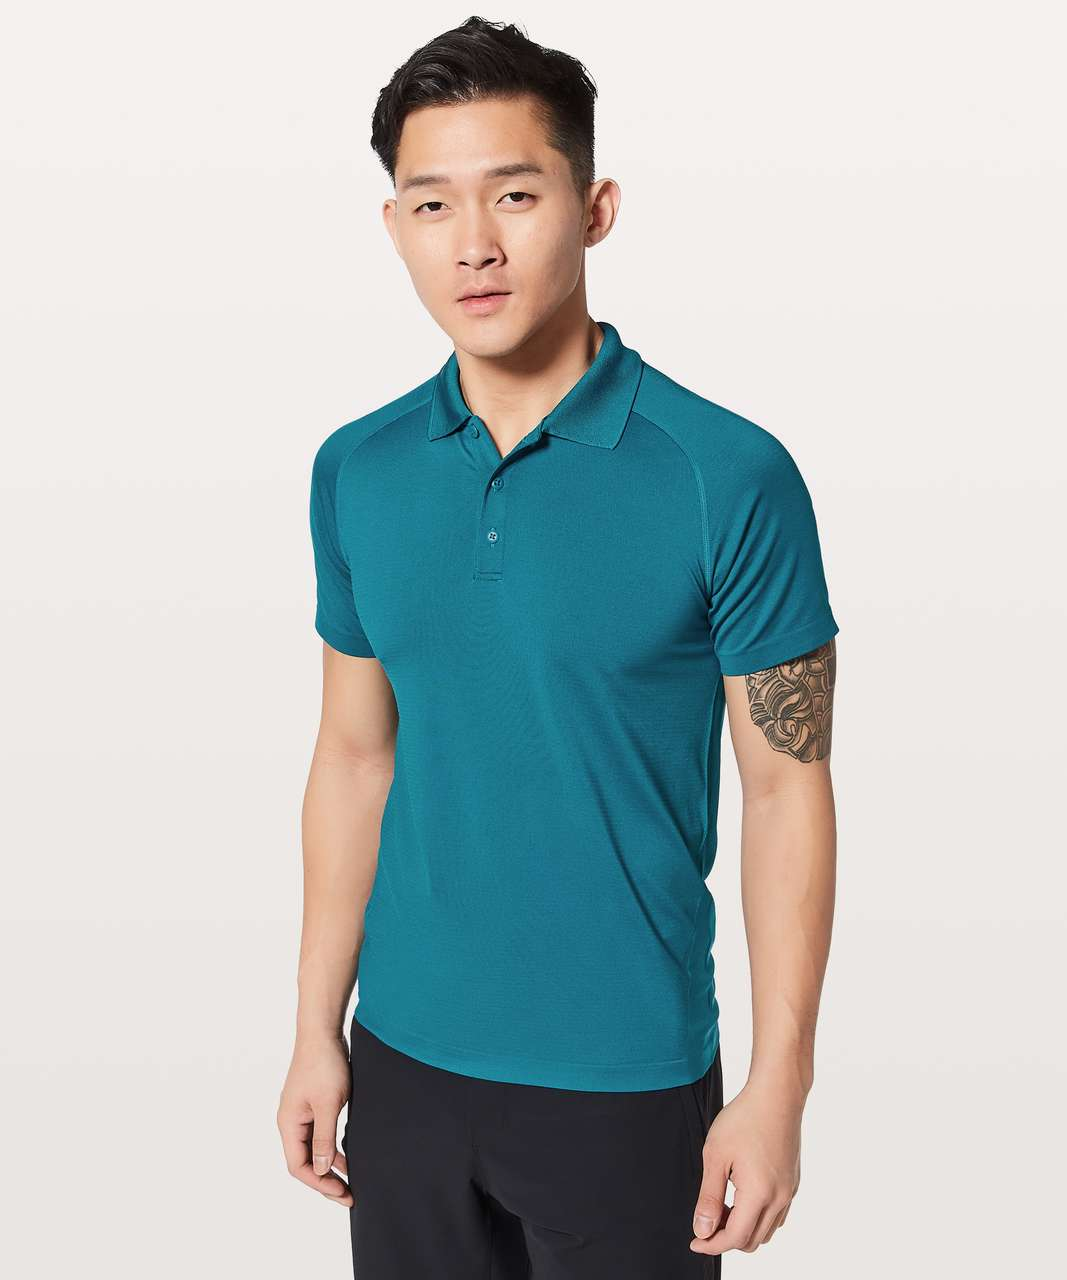 Lululemon Metal Vent Tech Polo - Capri / Capri